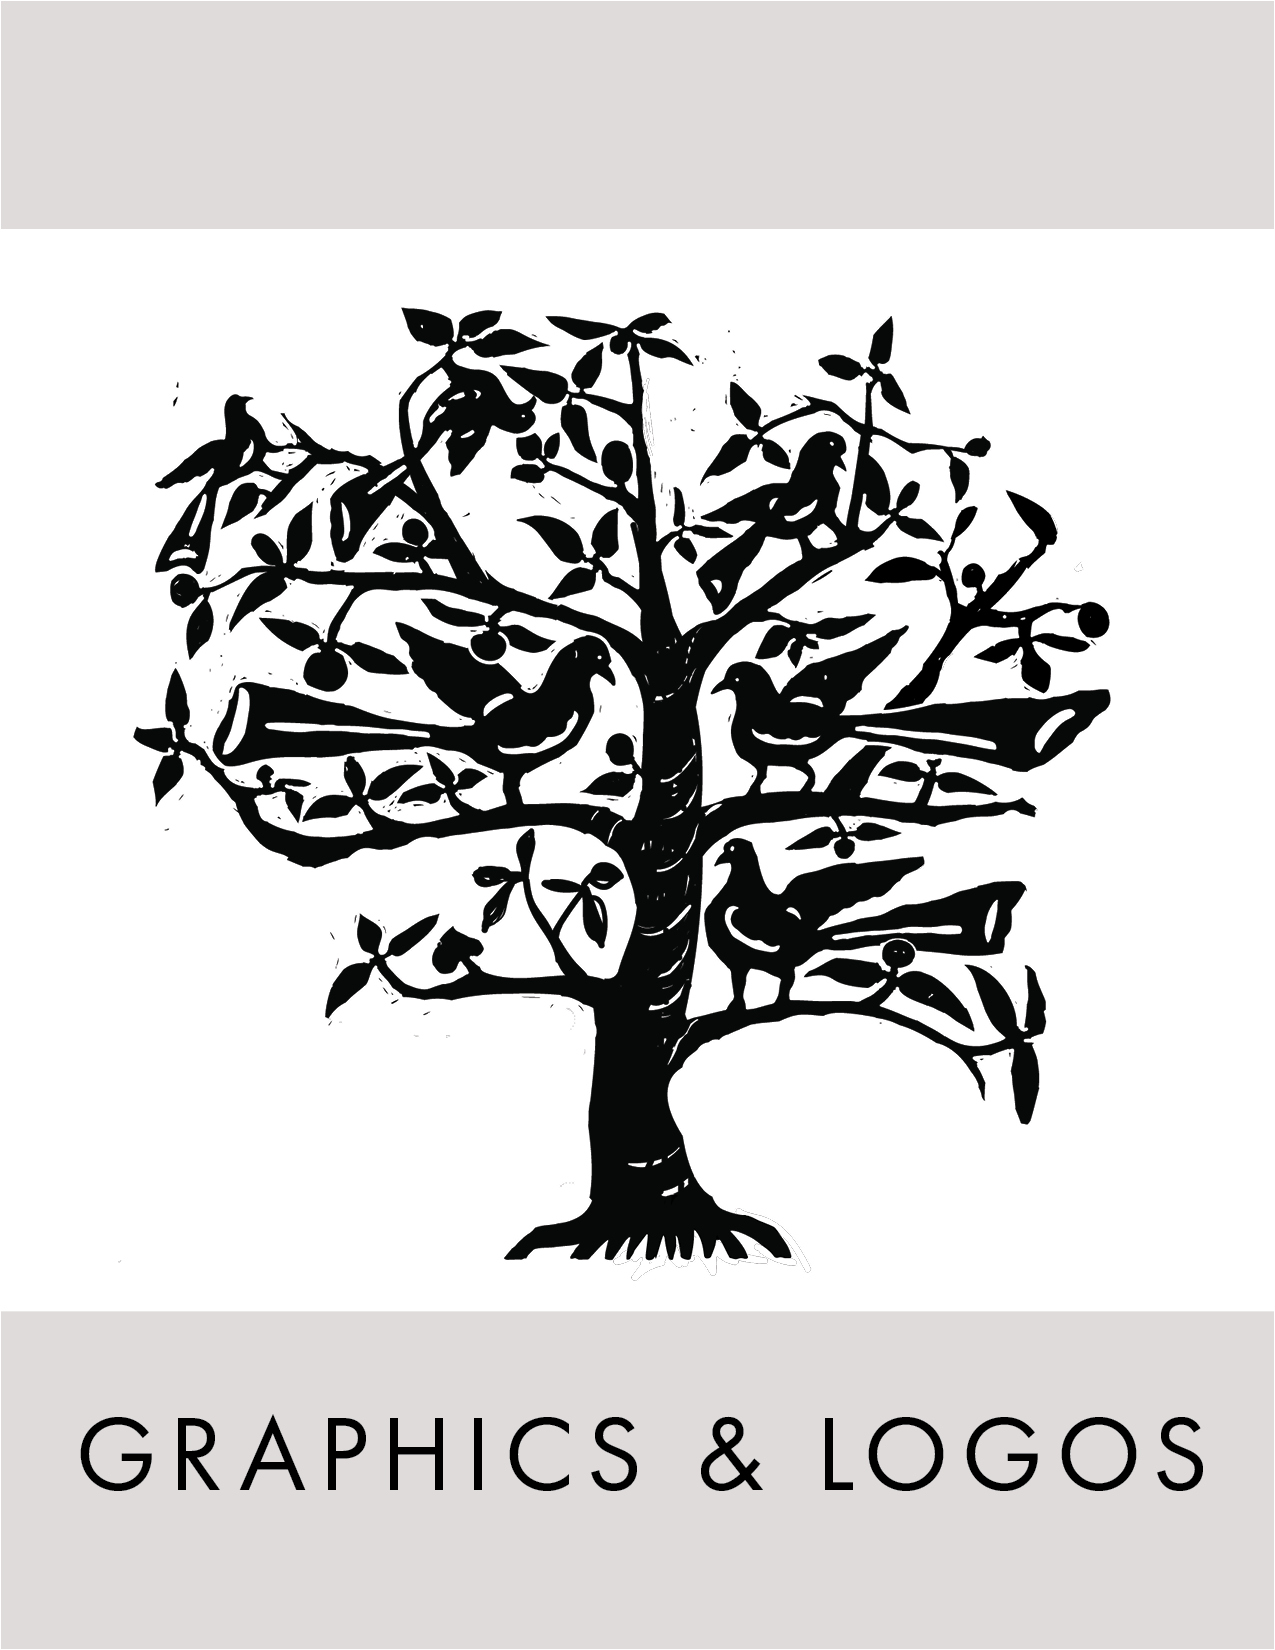 graphics and logos slide